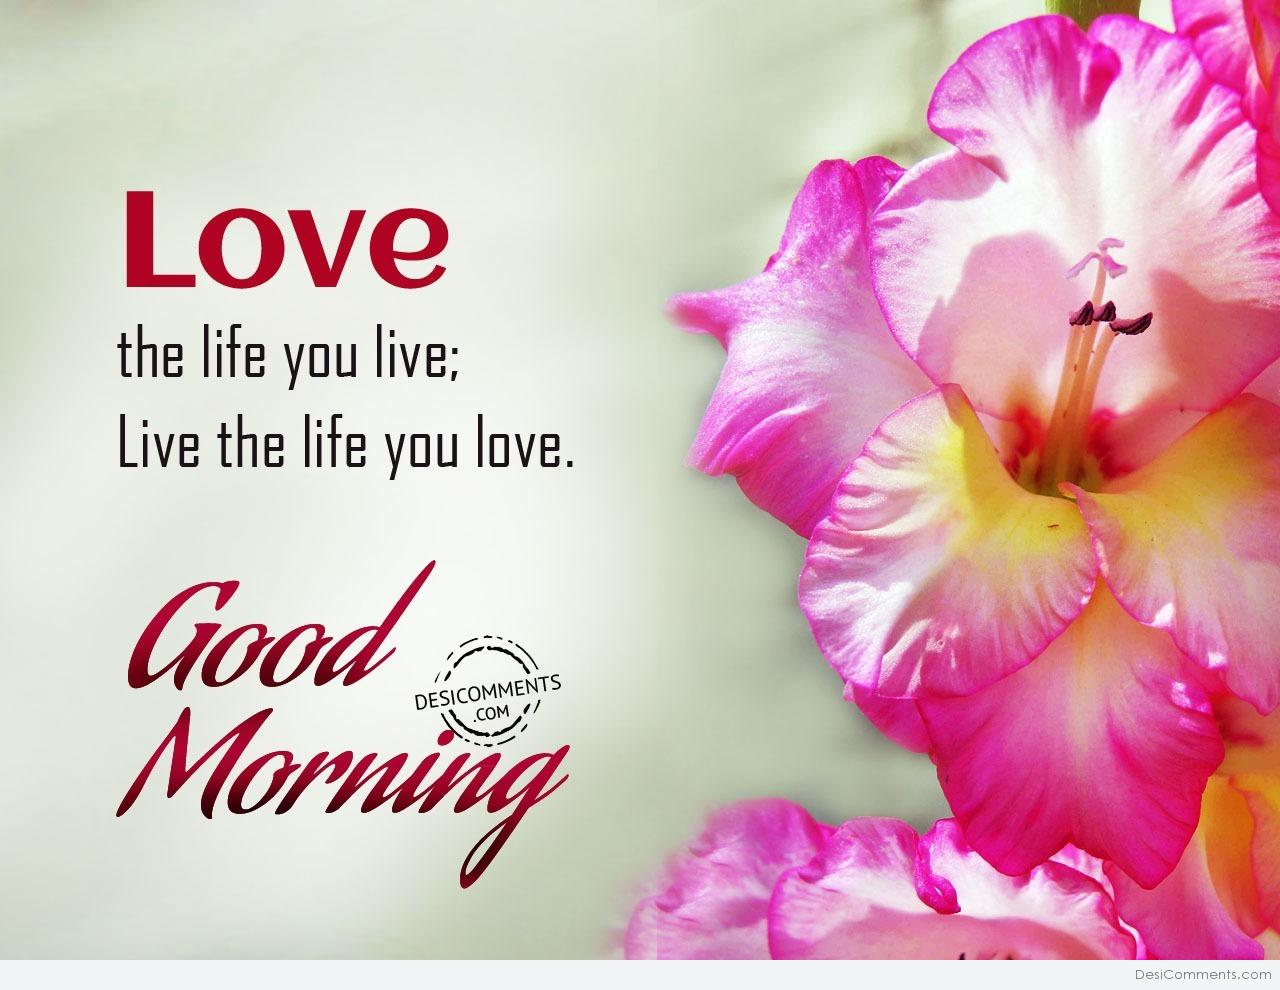 Love The Life You Live Good Morning Desicommentscom